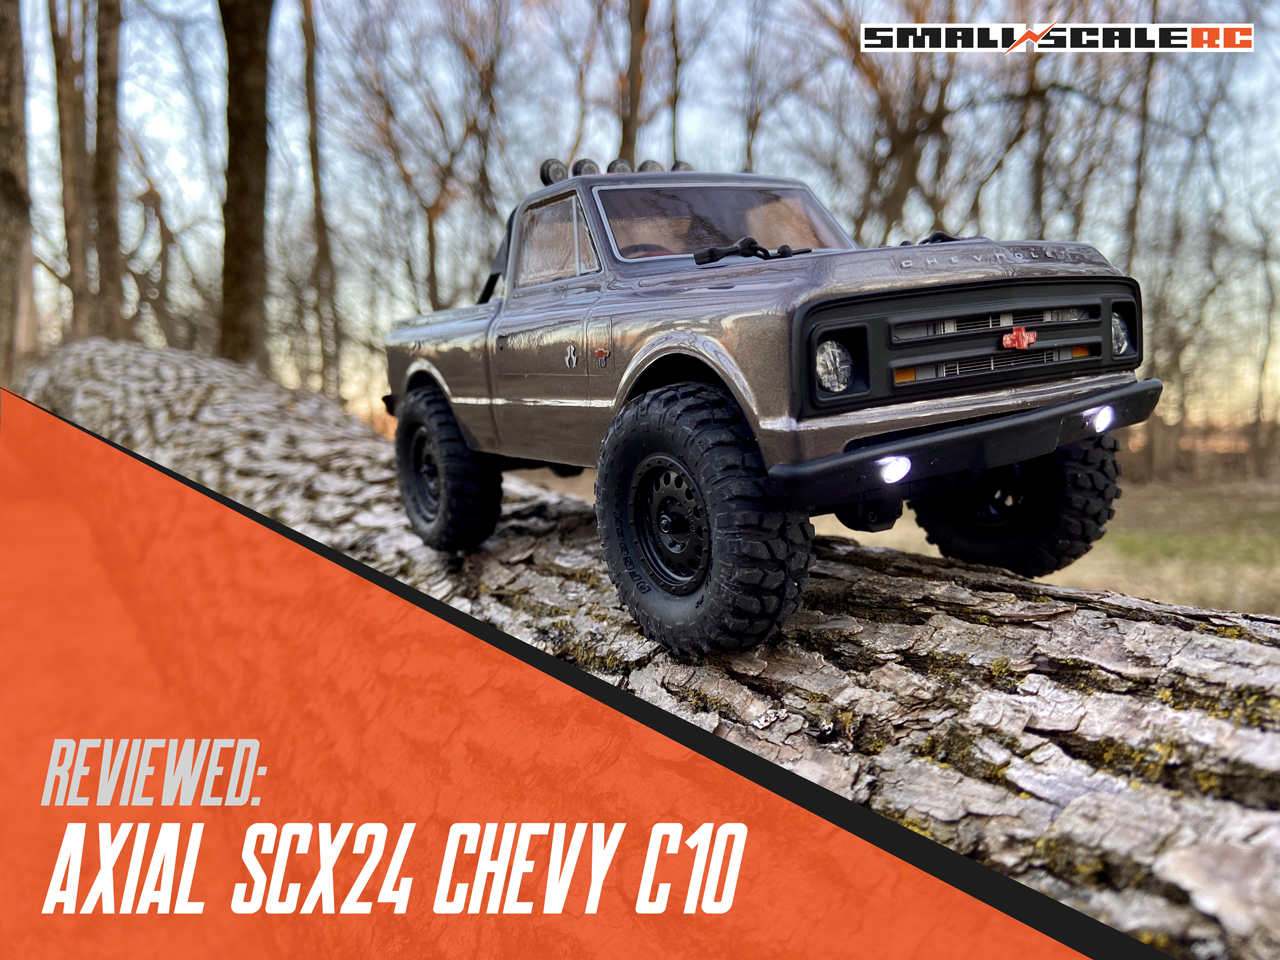 Review: Axial SCX24 1967 Chevy C10